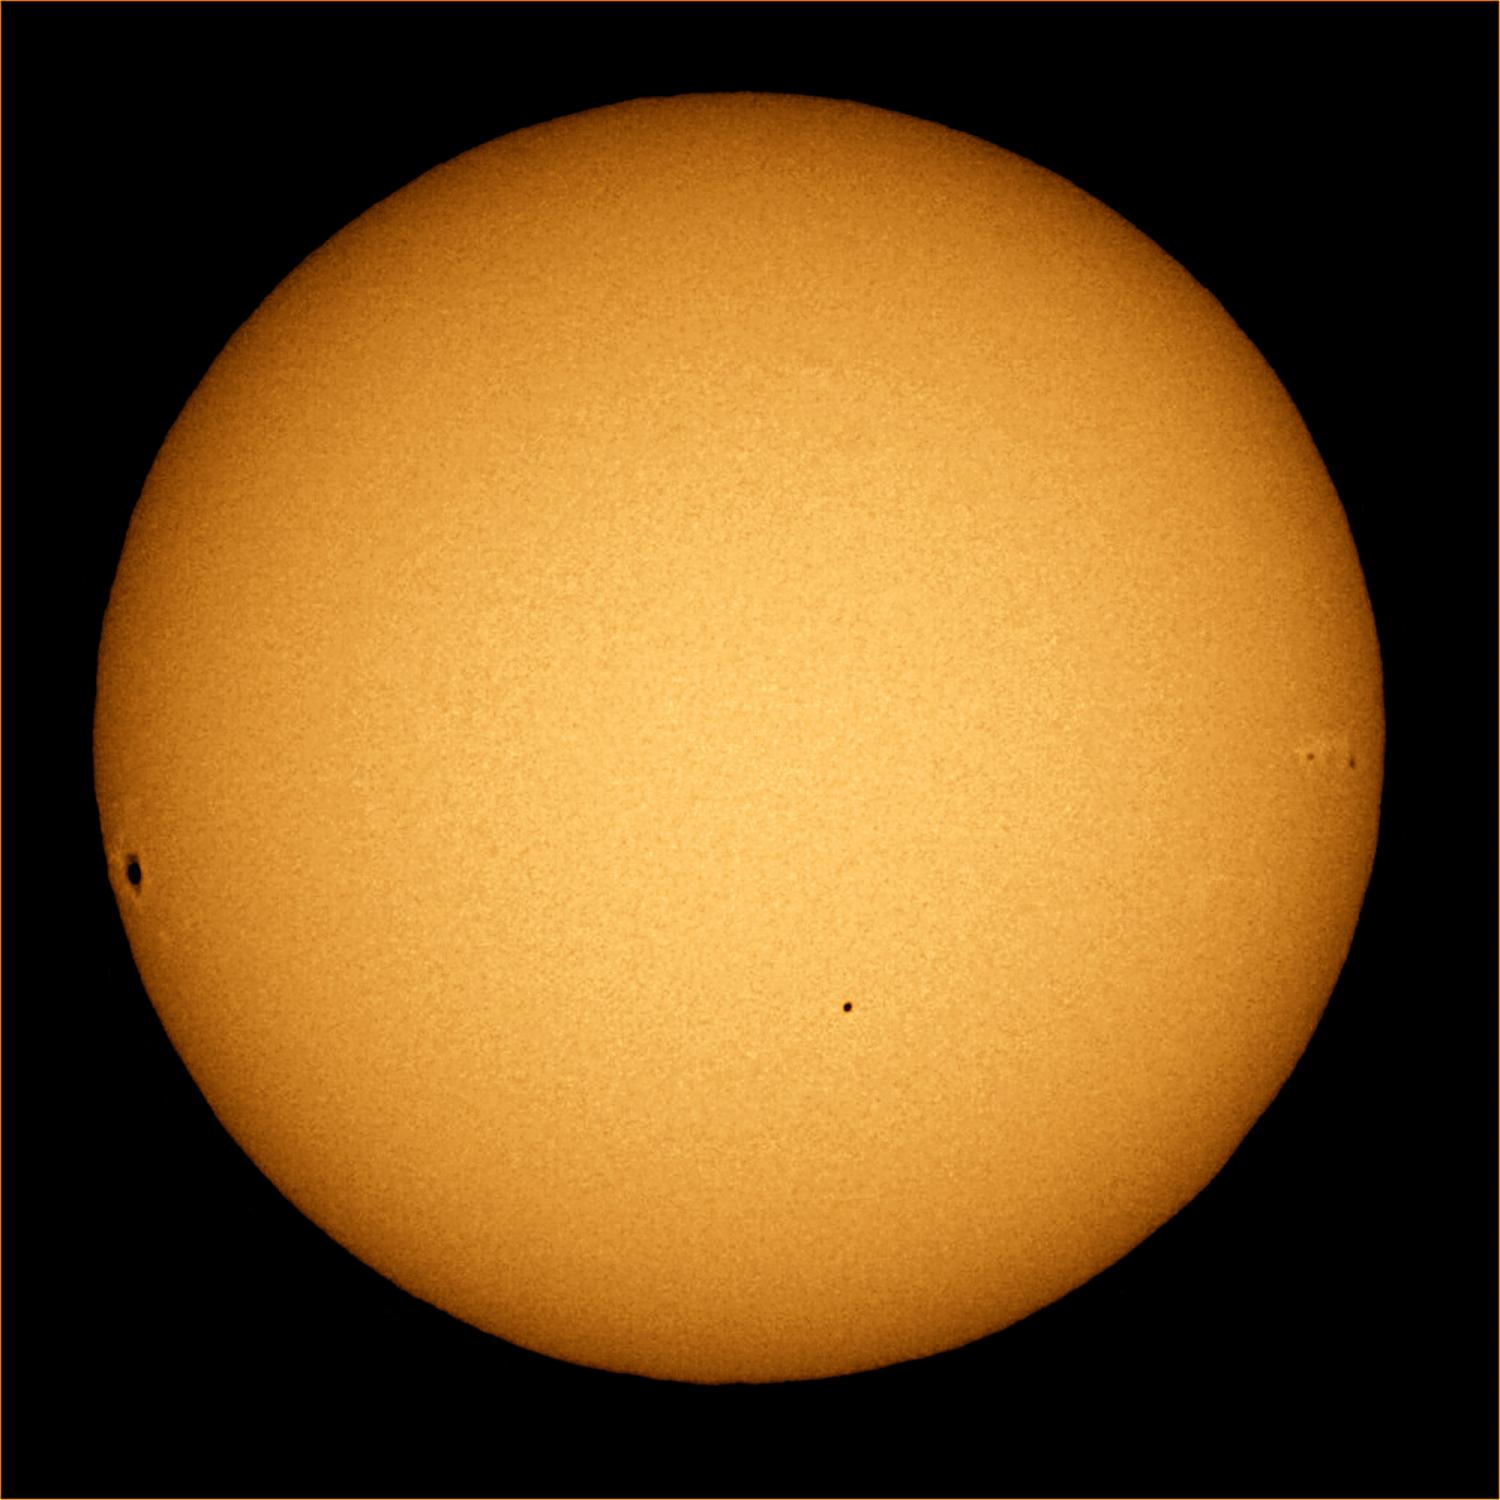 Rare transit of Mercury to take place on 9 May